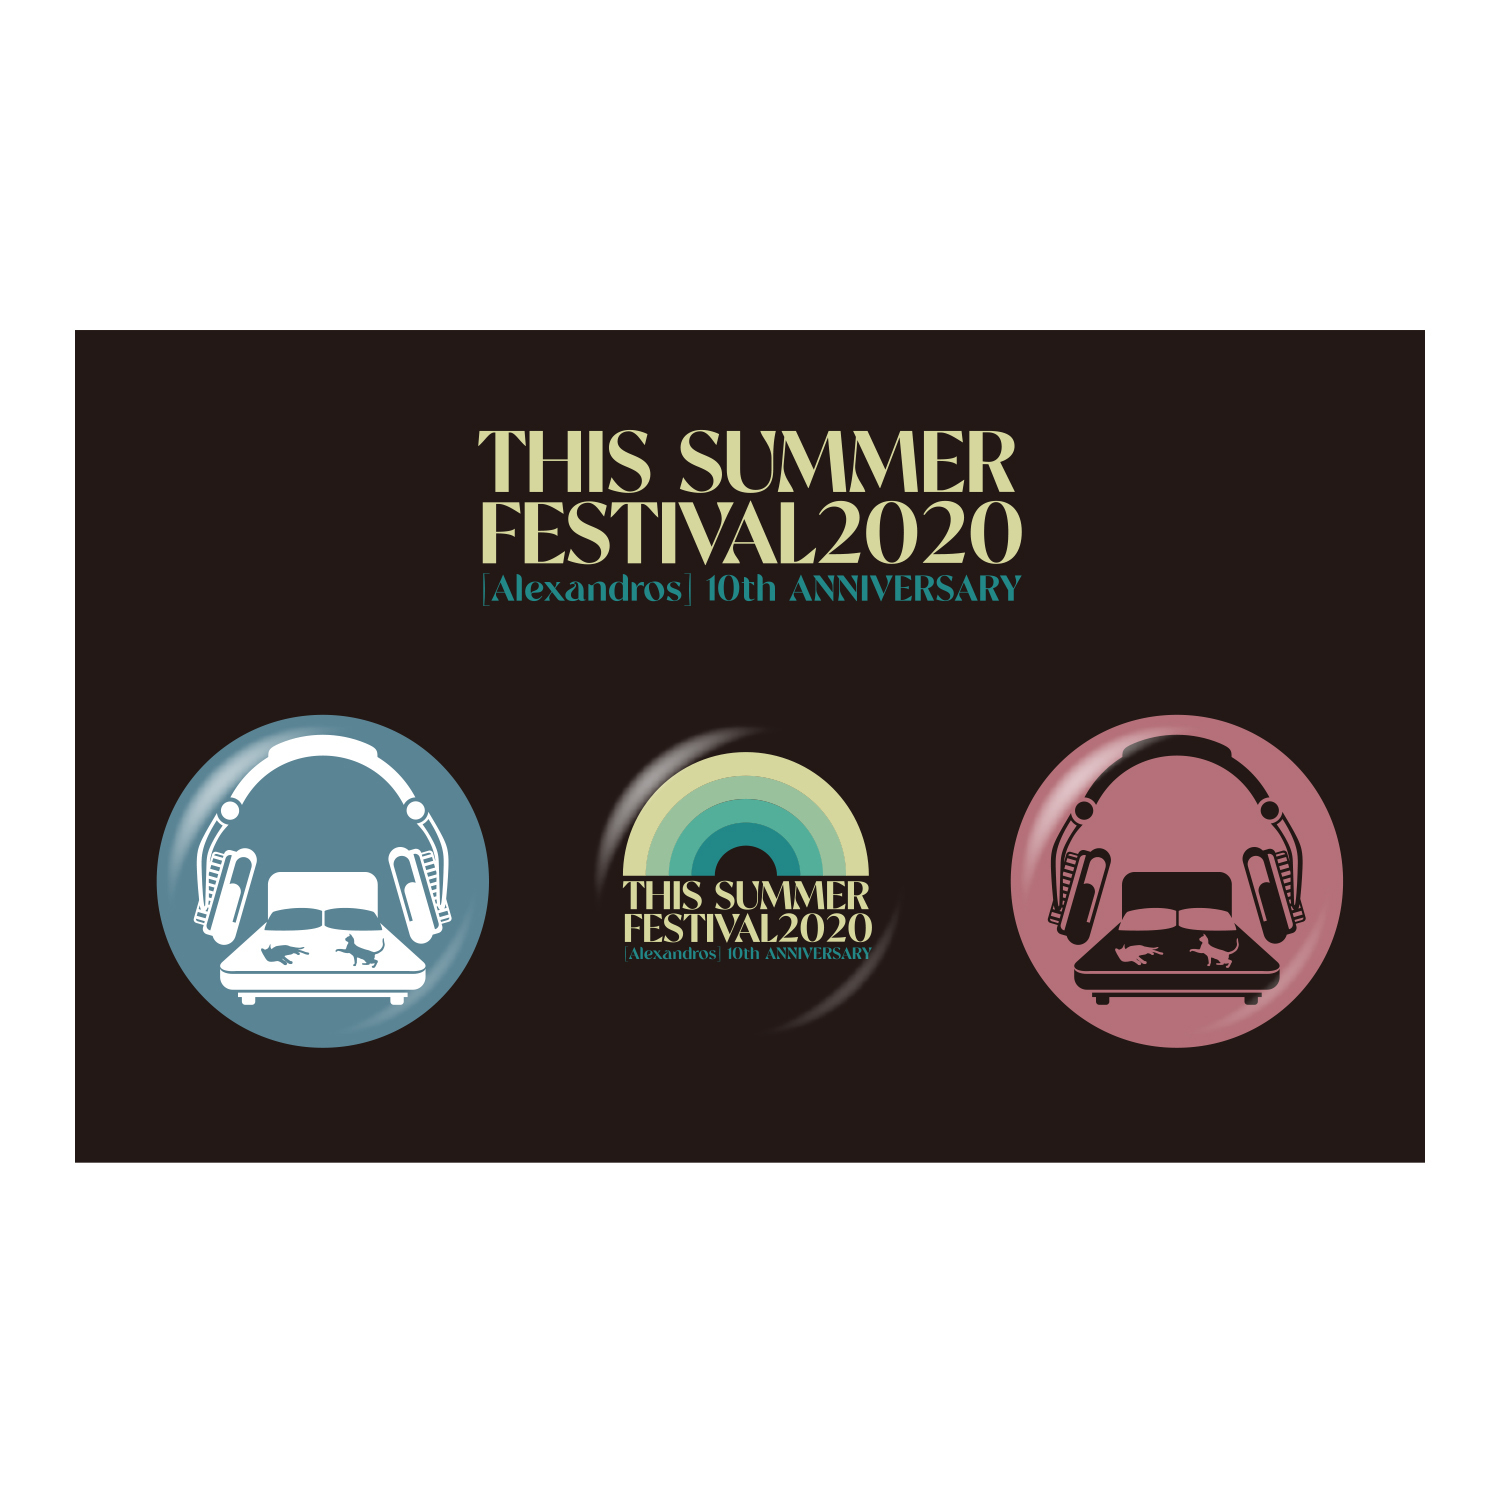 THIS SUMMER FESTIVAL 2020 BADGE SET